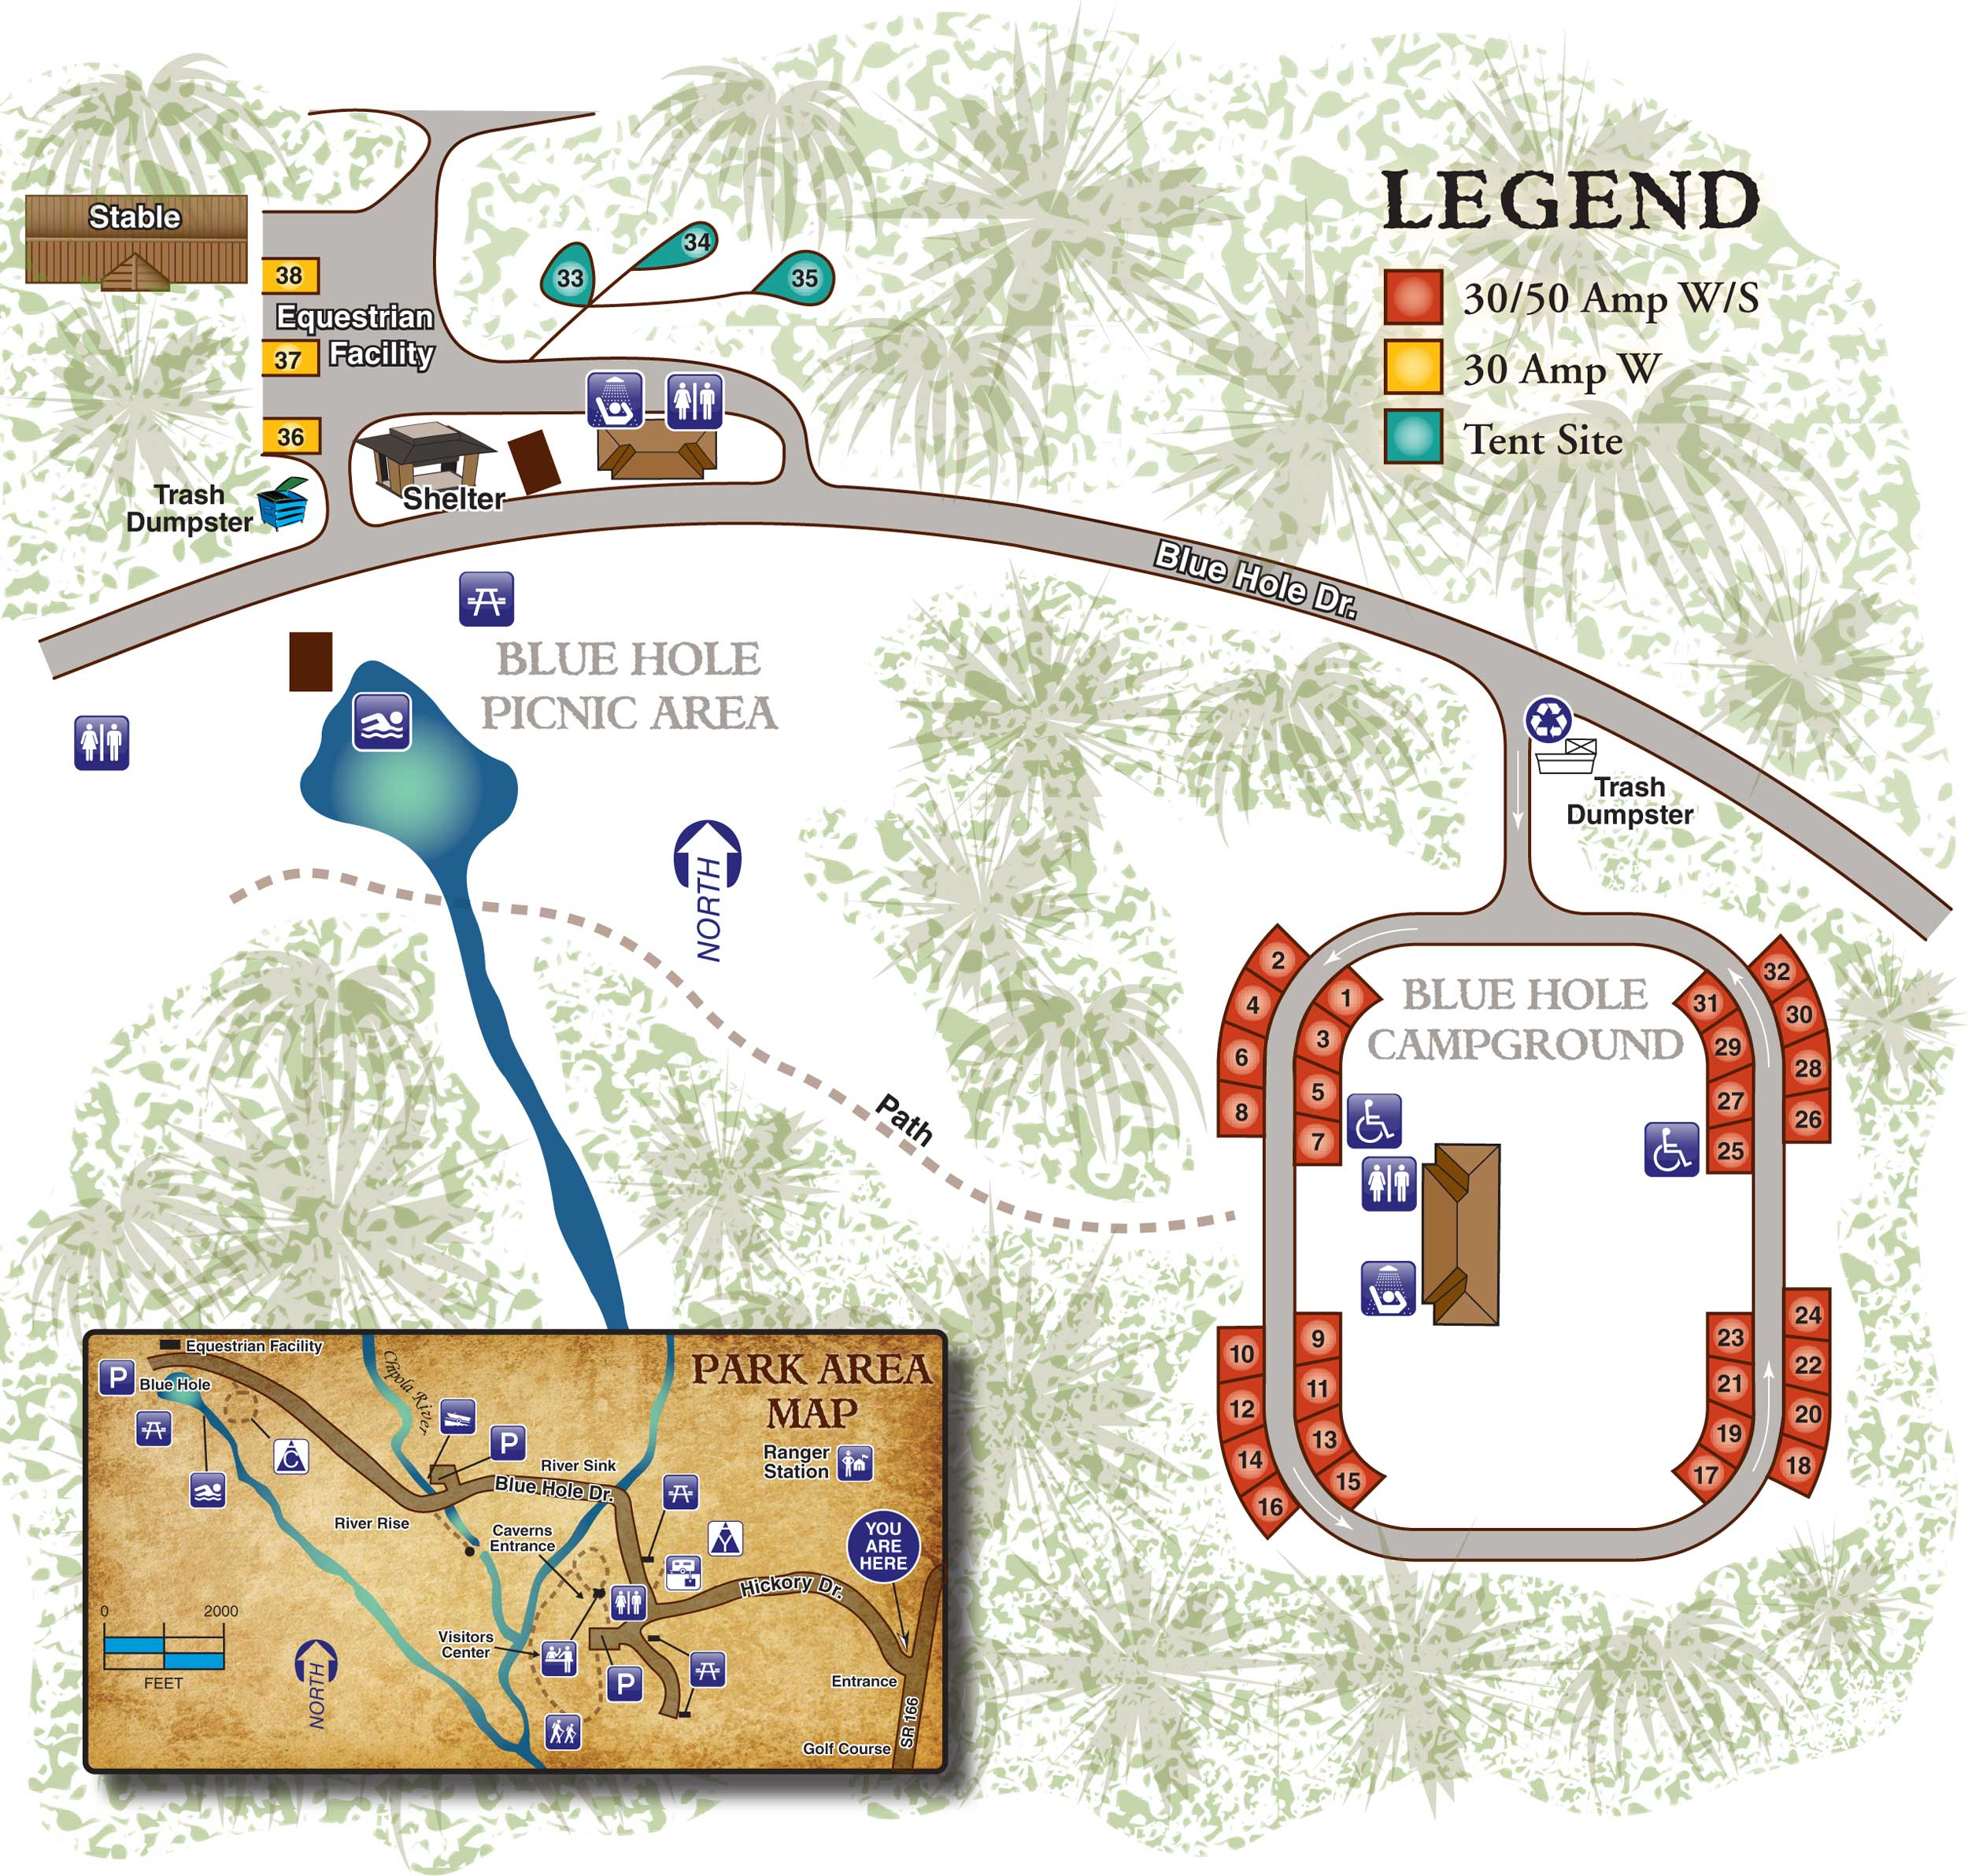 Florida State Parks Rv Camping - Know Your Campground - Florida Caverns State Park Map